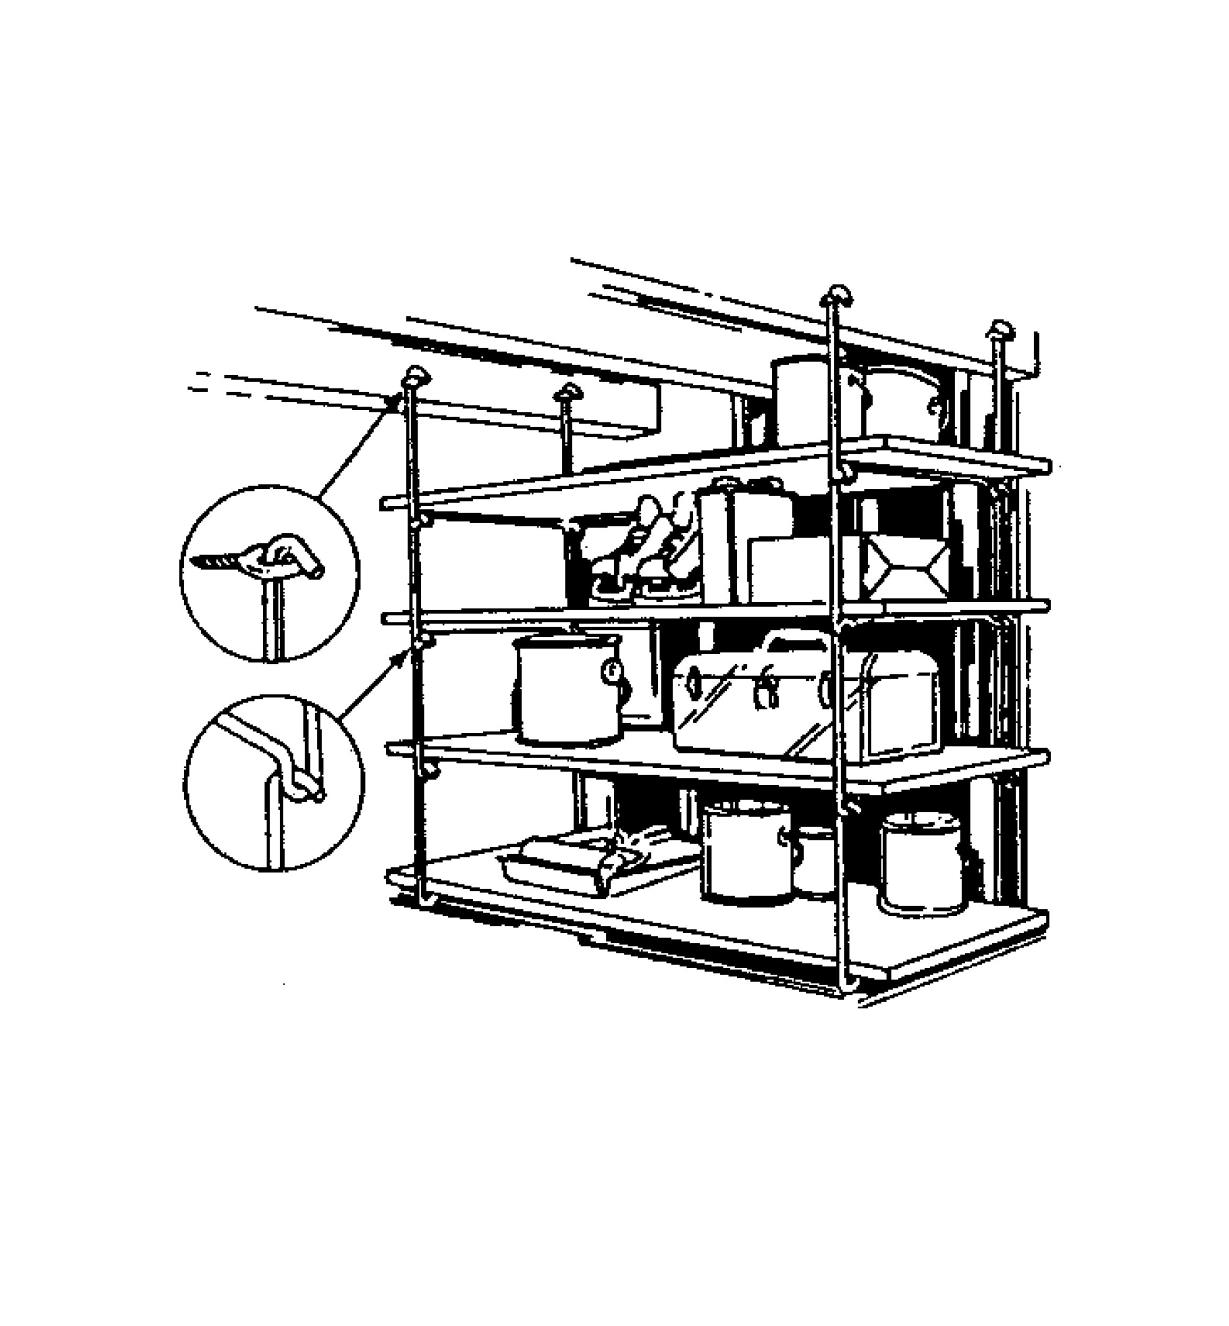 Illustrated example of of four shelves supported by four pairs of shelf hangers hooked together